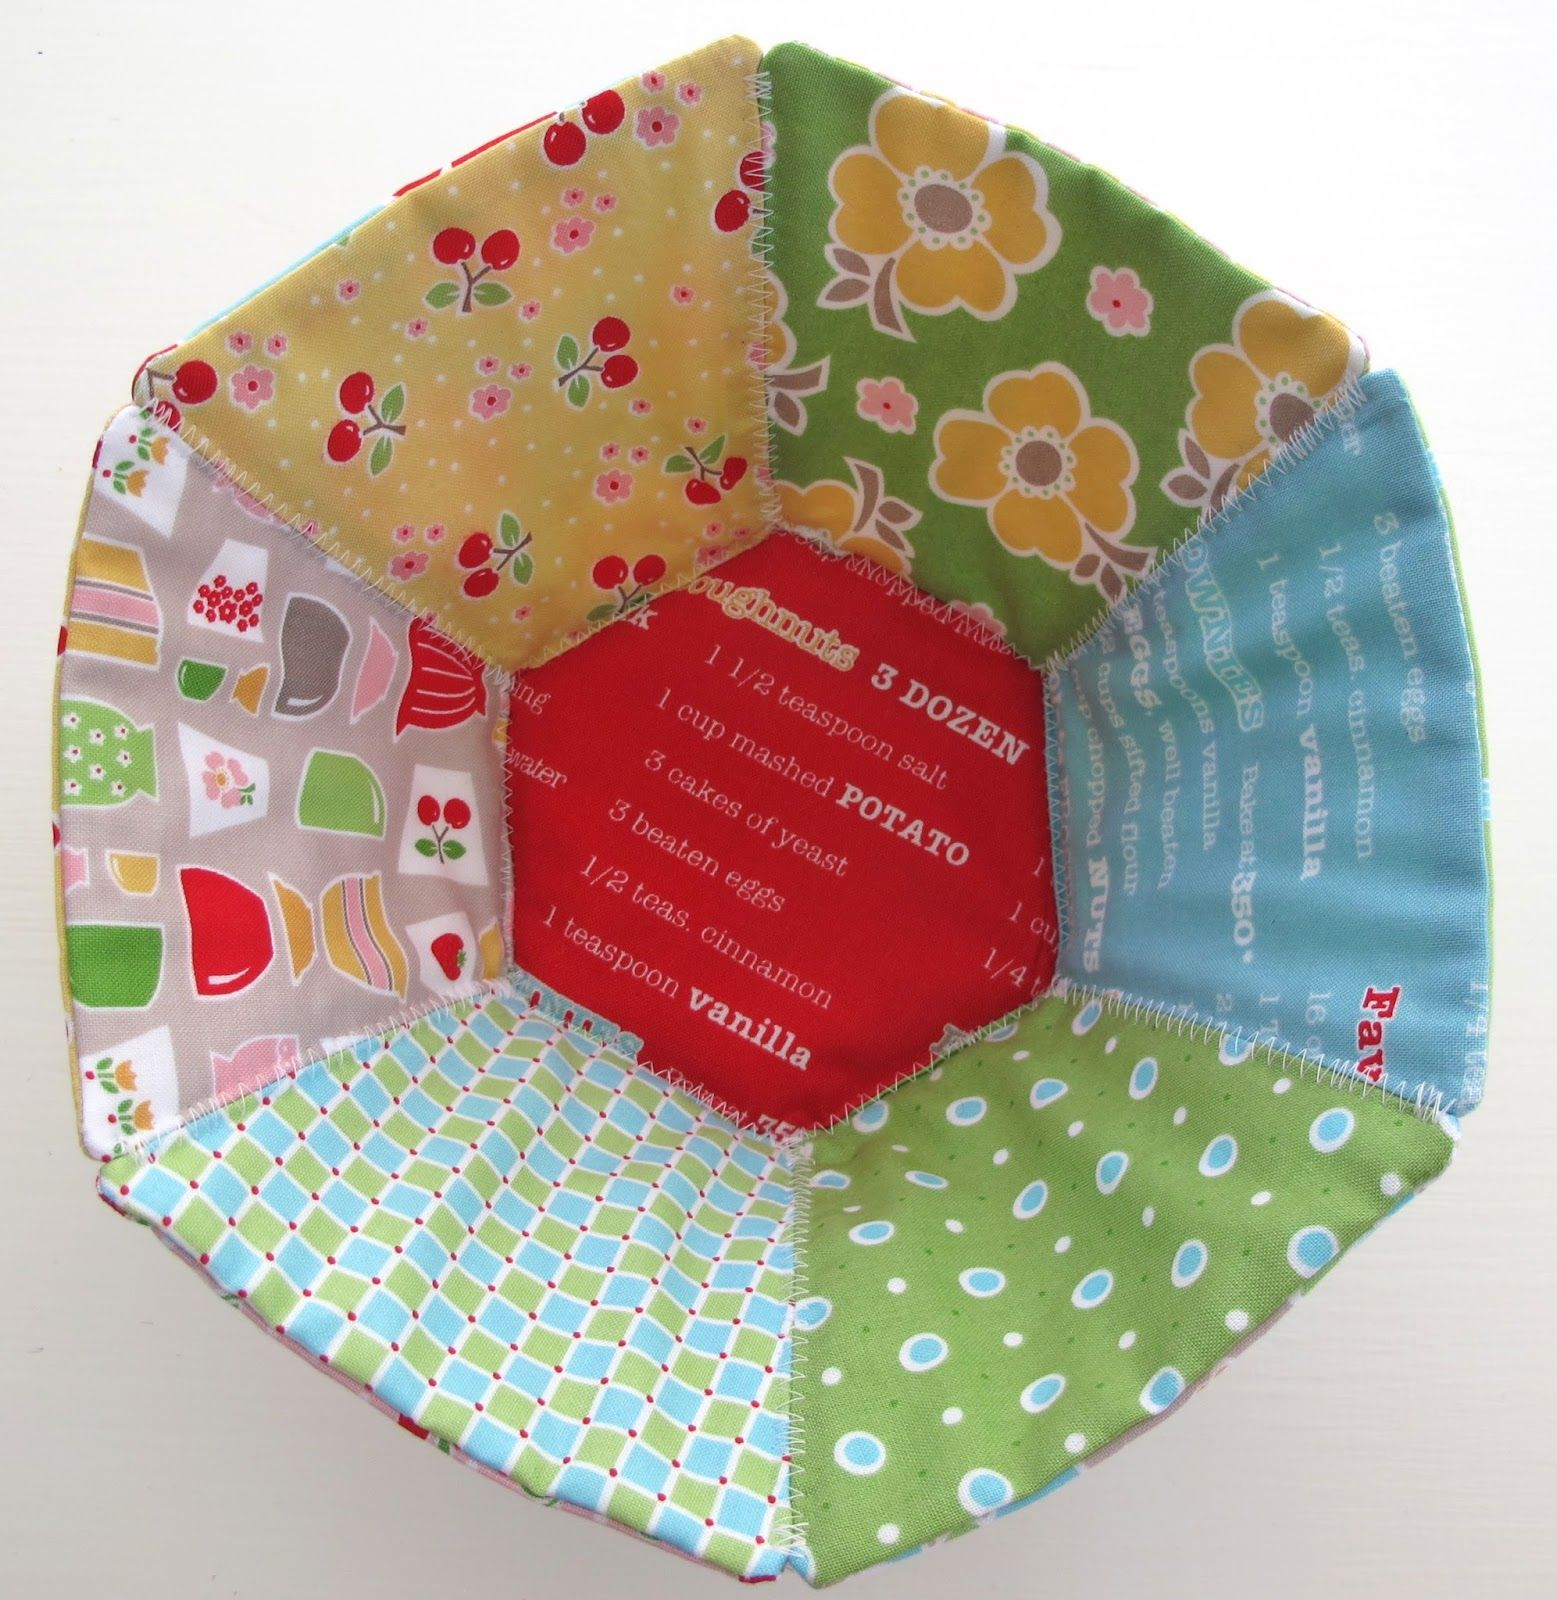 Microwave Bowl Potholder Pattern | Another fun little project is a ... : quilt patterns for potholders - Adamdwight.com